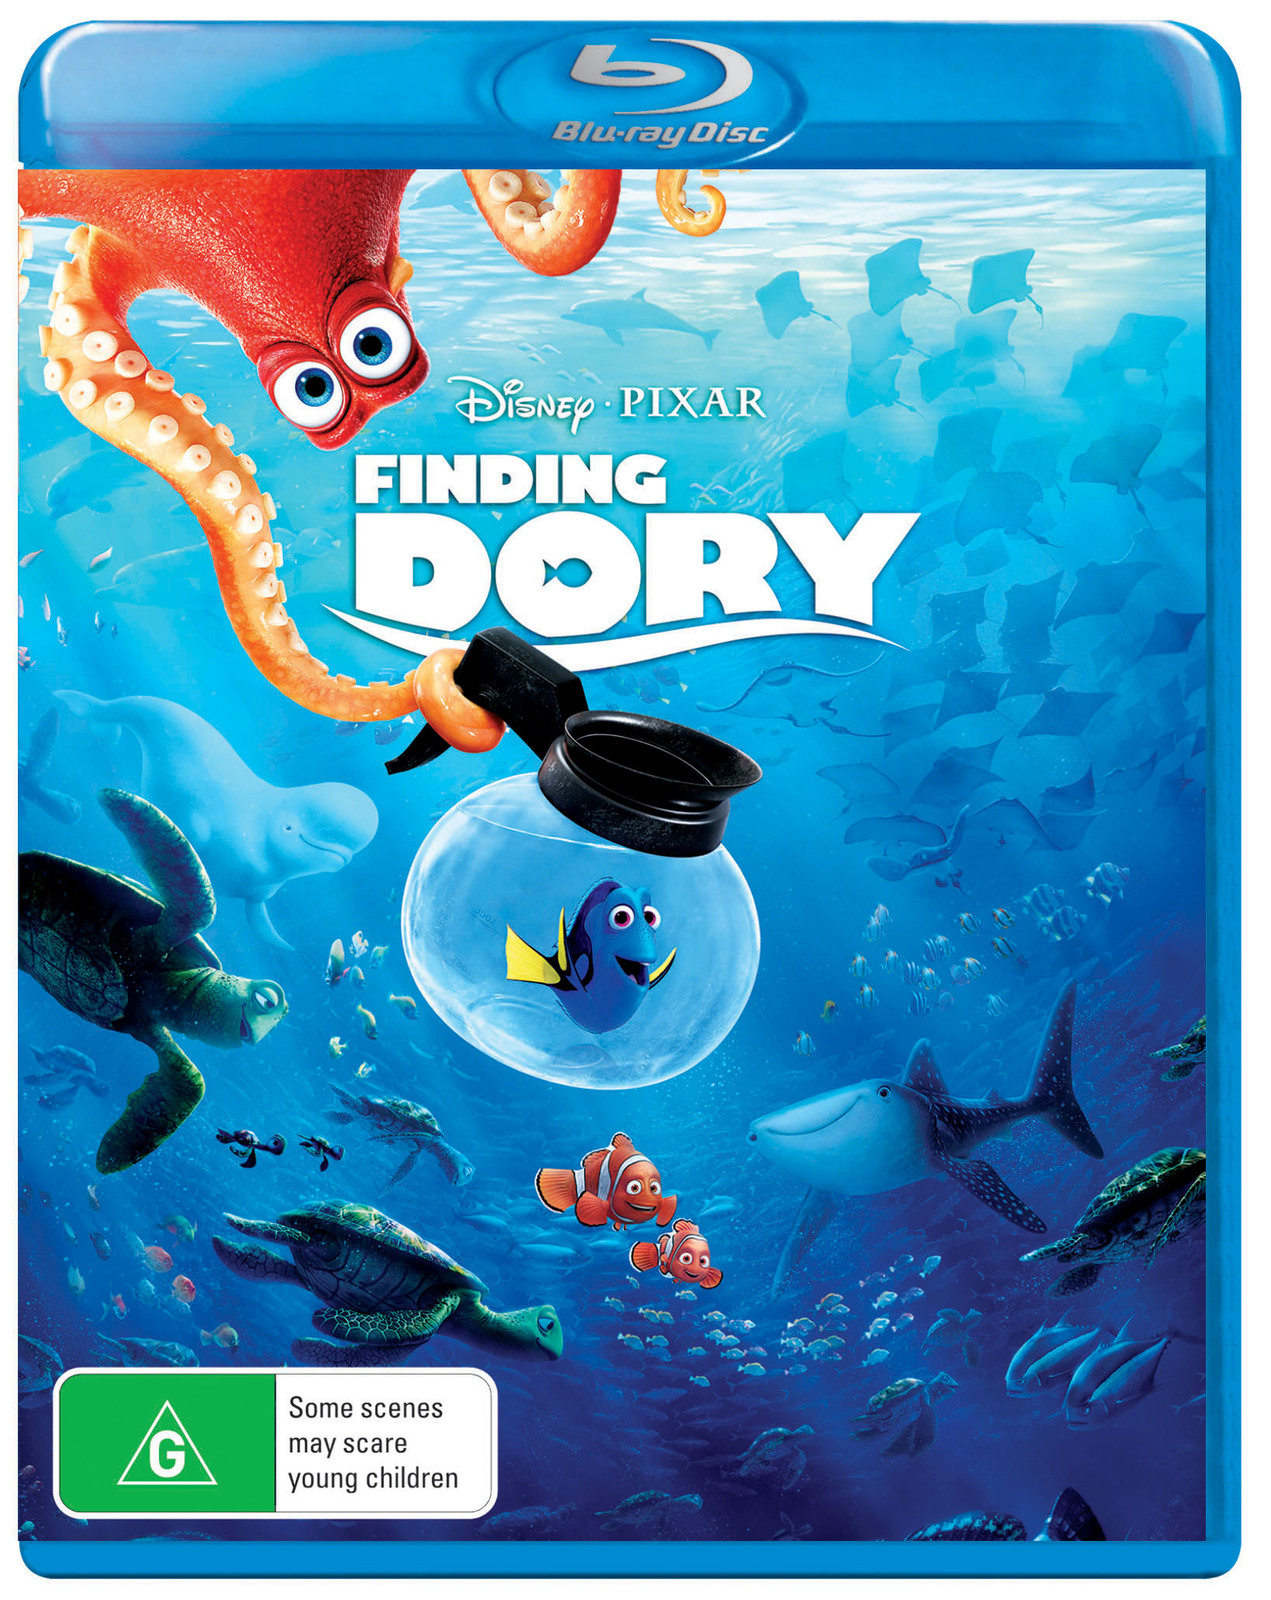 Finding Dory on Blu-ray image